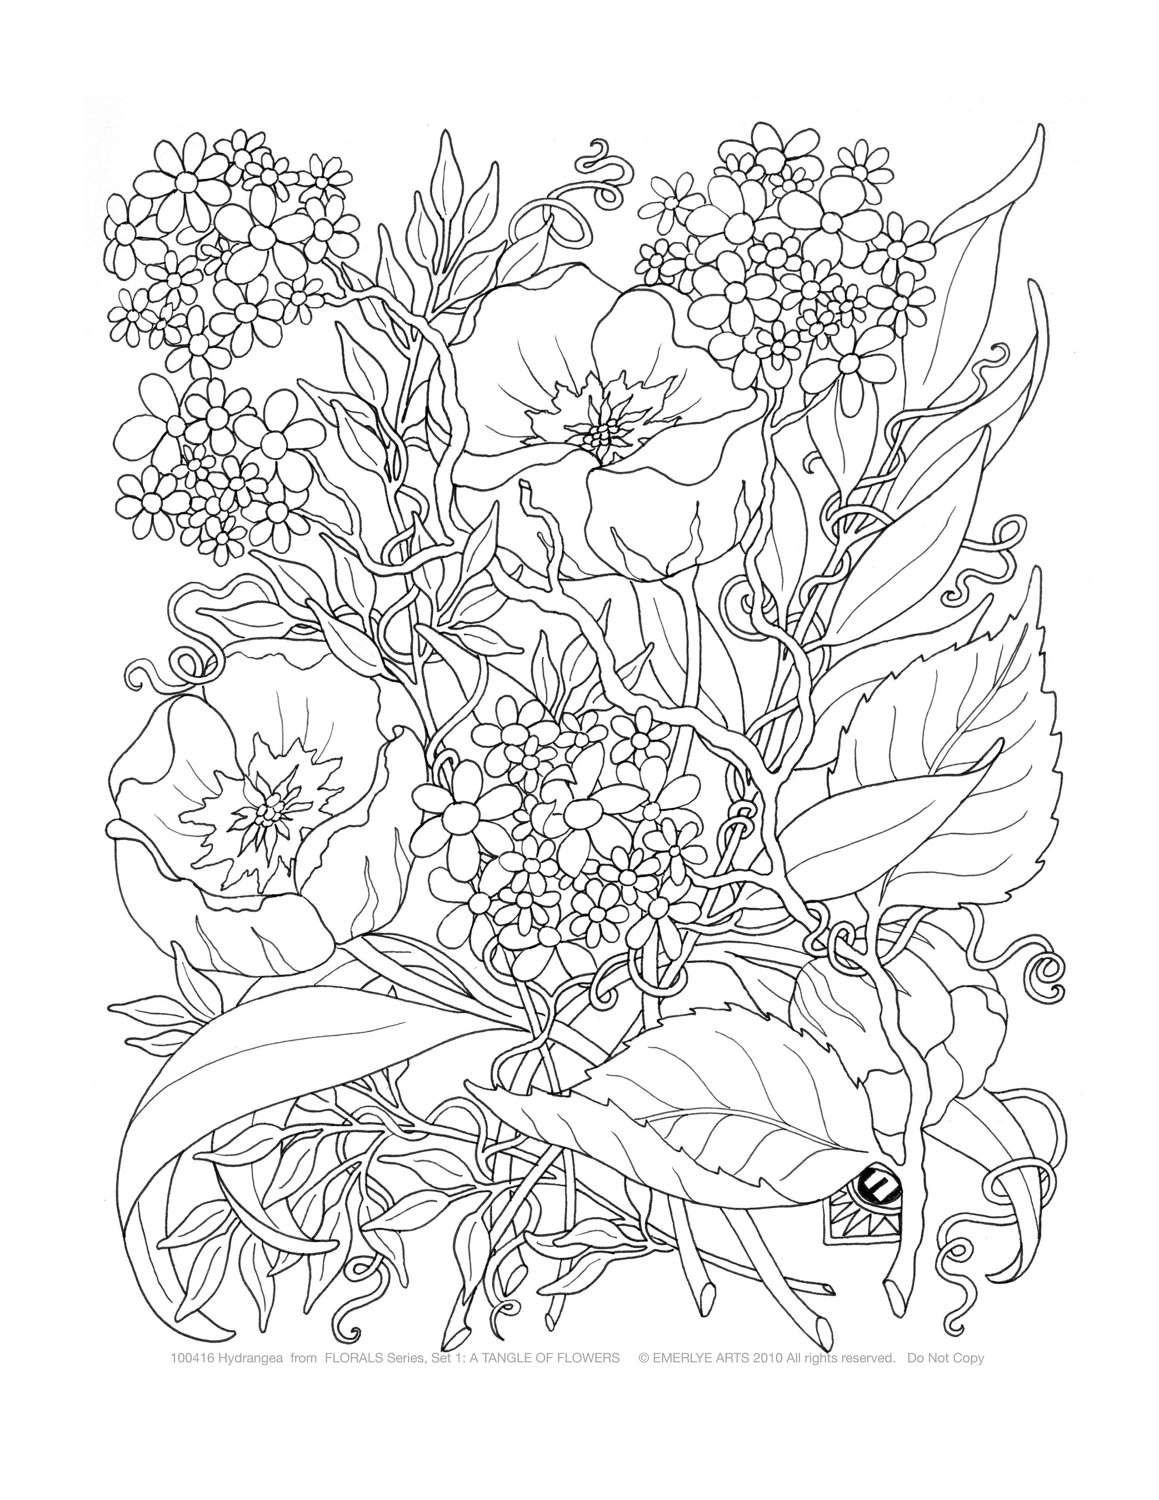 flower coloring pages adults get this detailed flower coloring pages for adults pages flower adults coloring